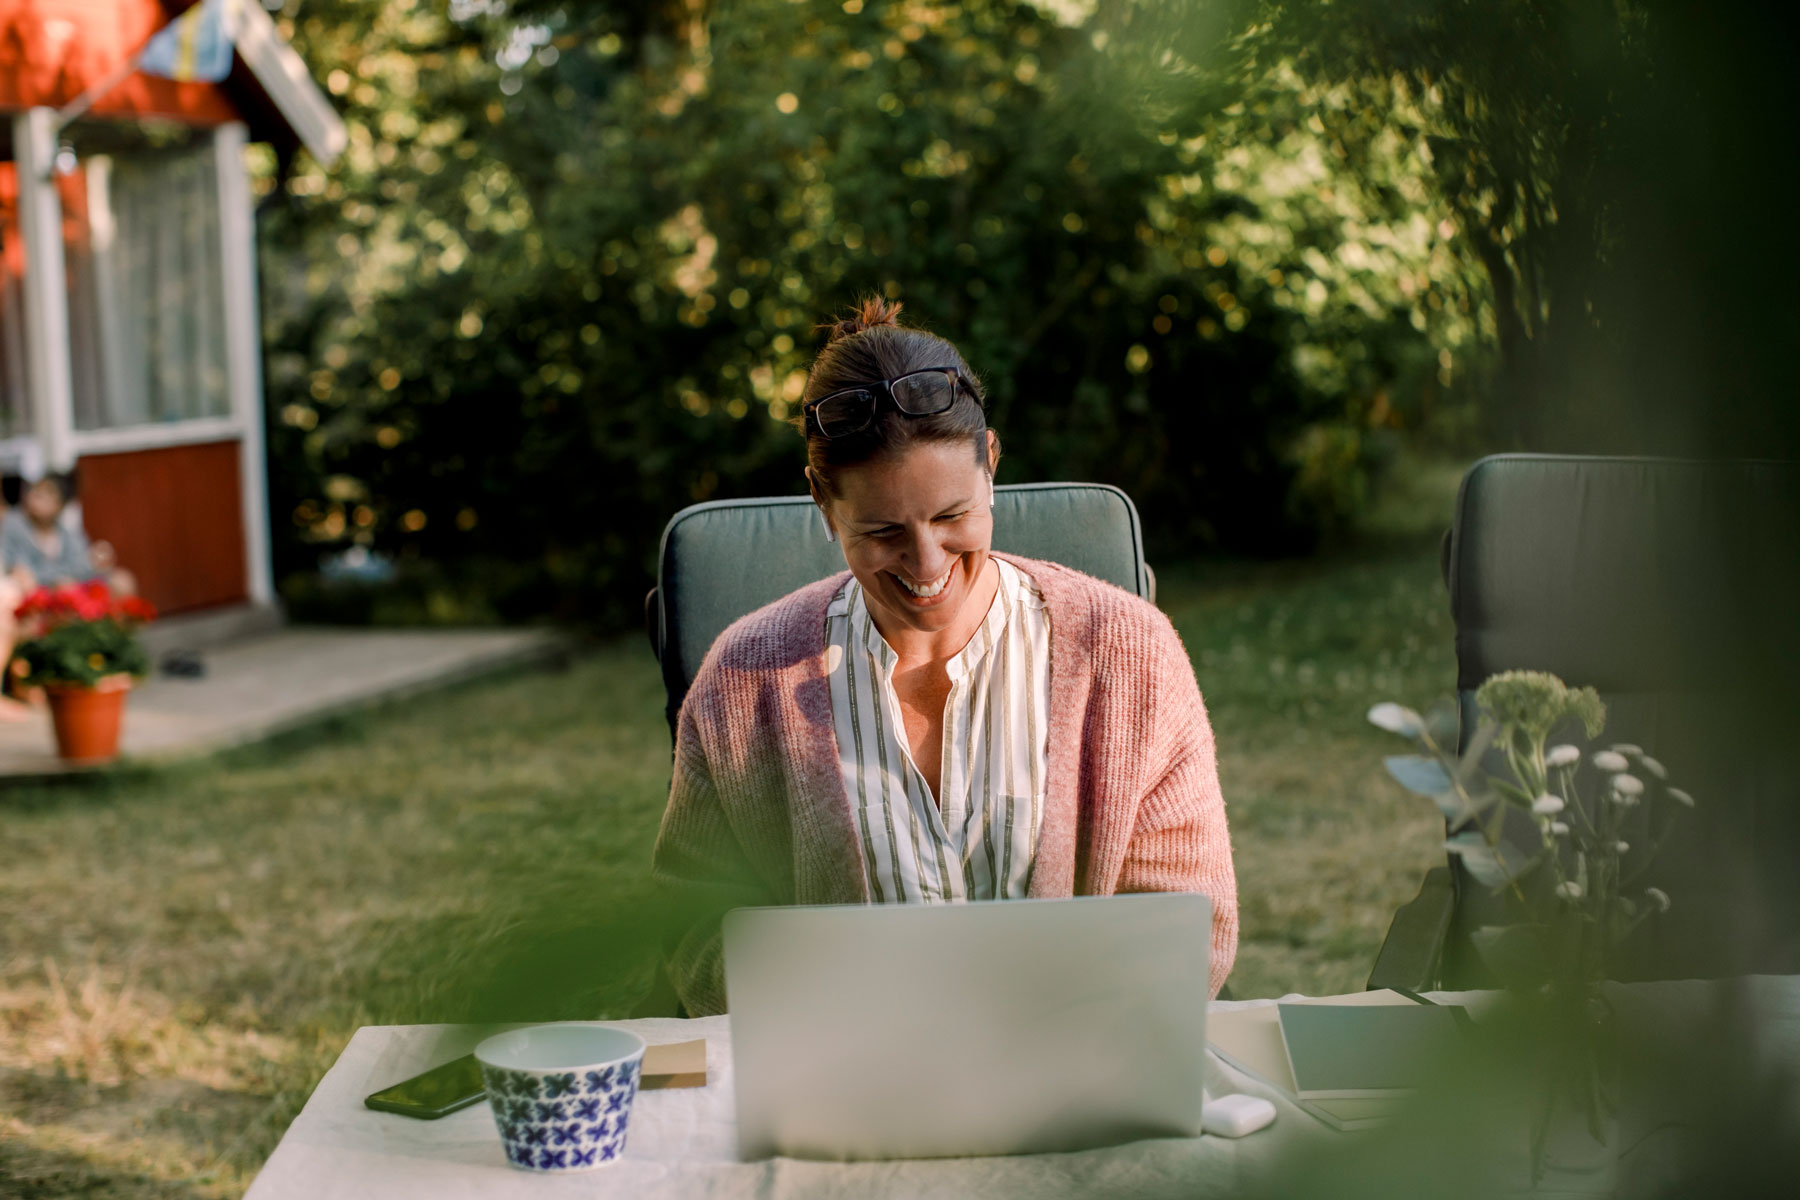 woman using a laptop outdoors